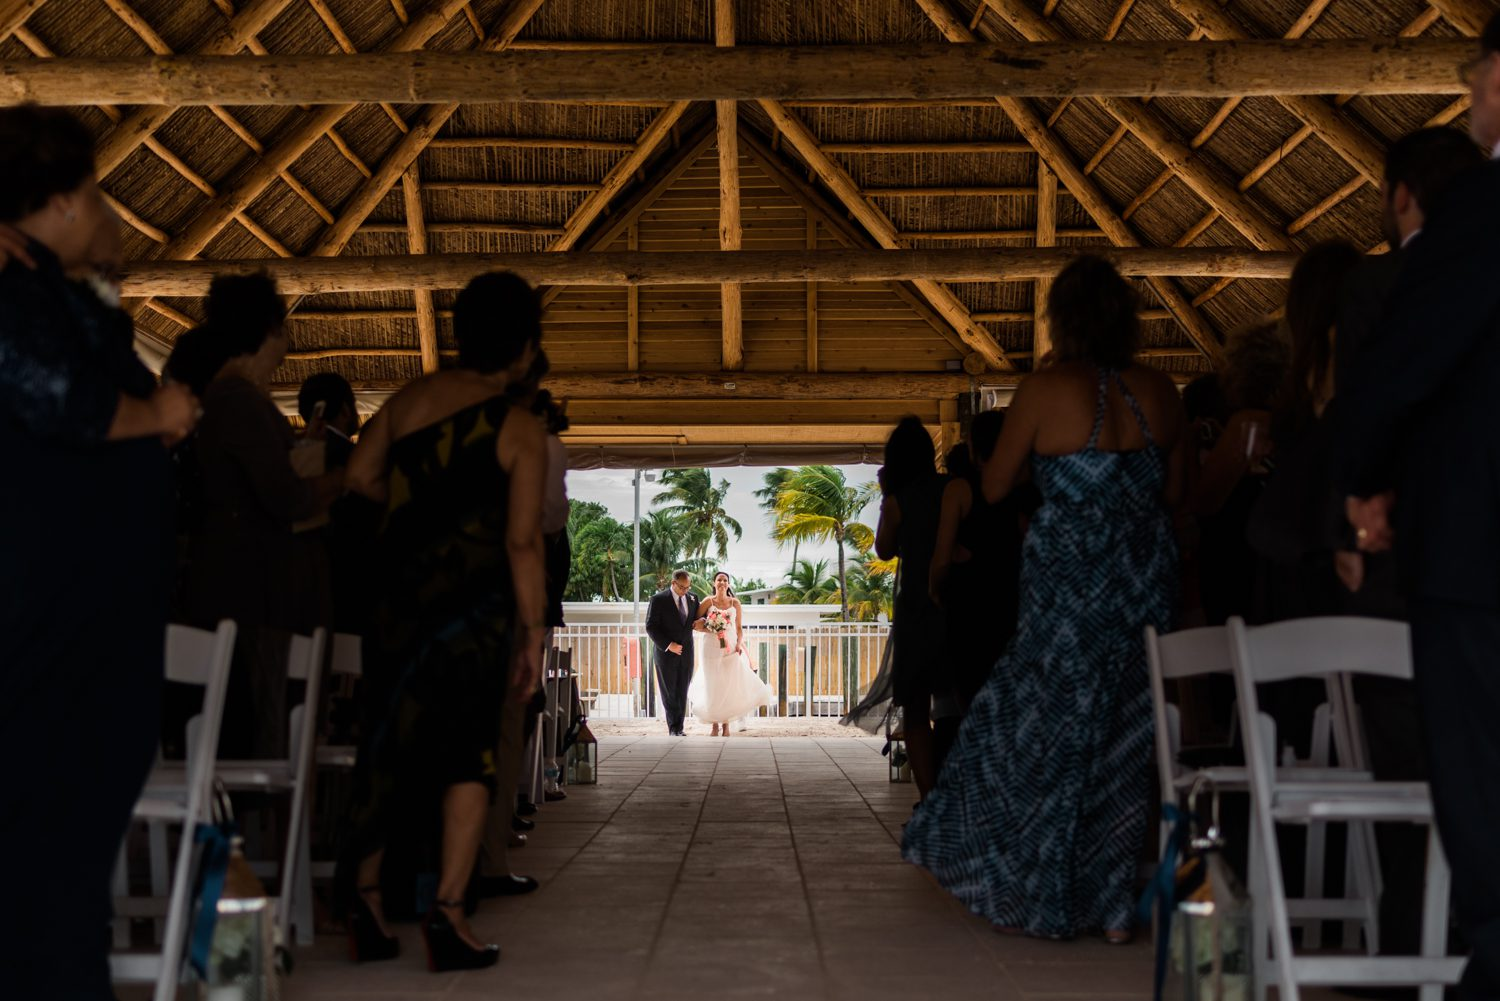 Postcard Inn at Holiday Isle Wedding Islamorada Wedding Photographer 284 - Postcard Inn at Holiday Isle - Florida Keys Wedding Photography - Olivia & Grant